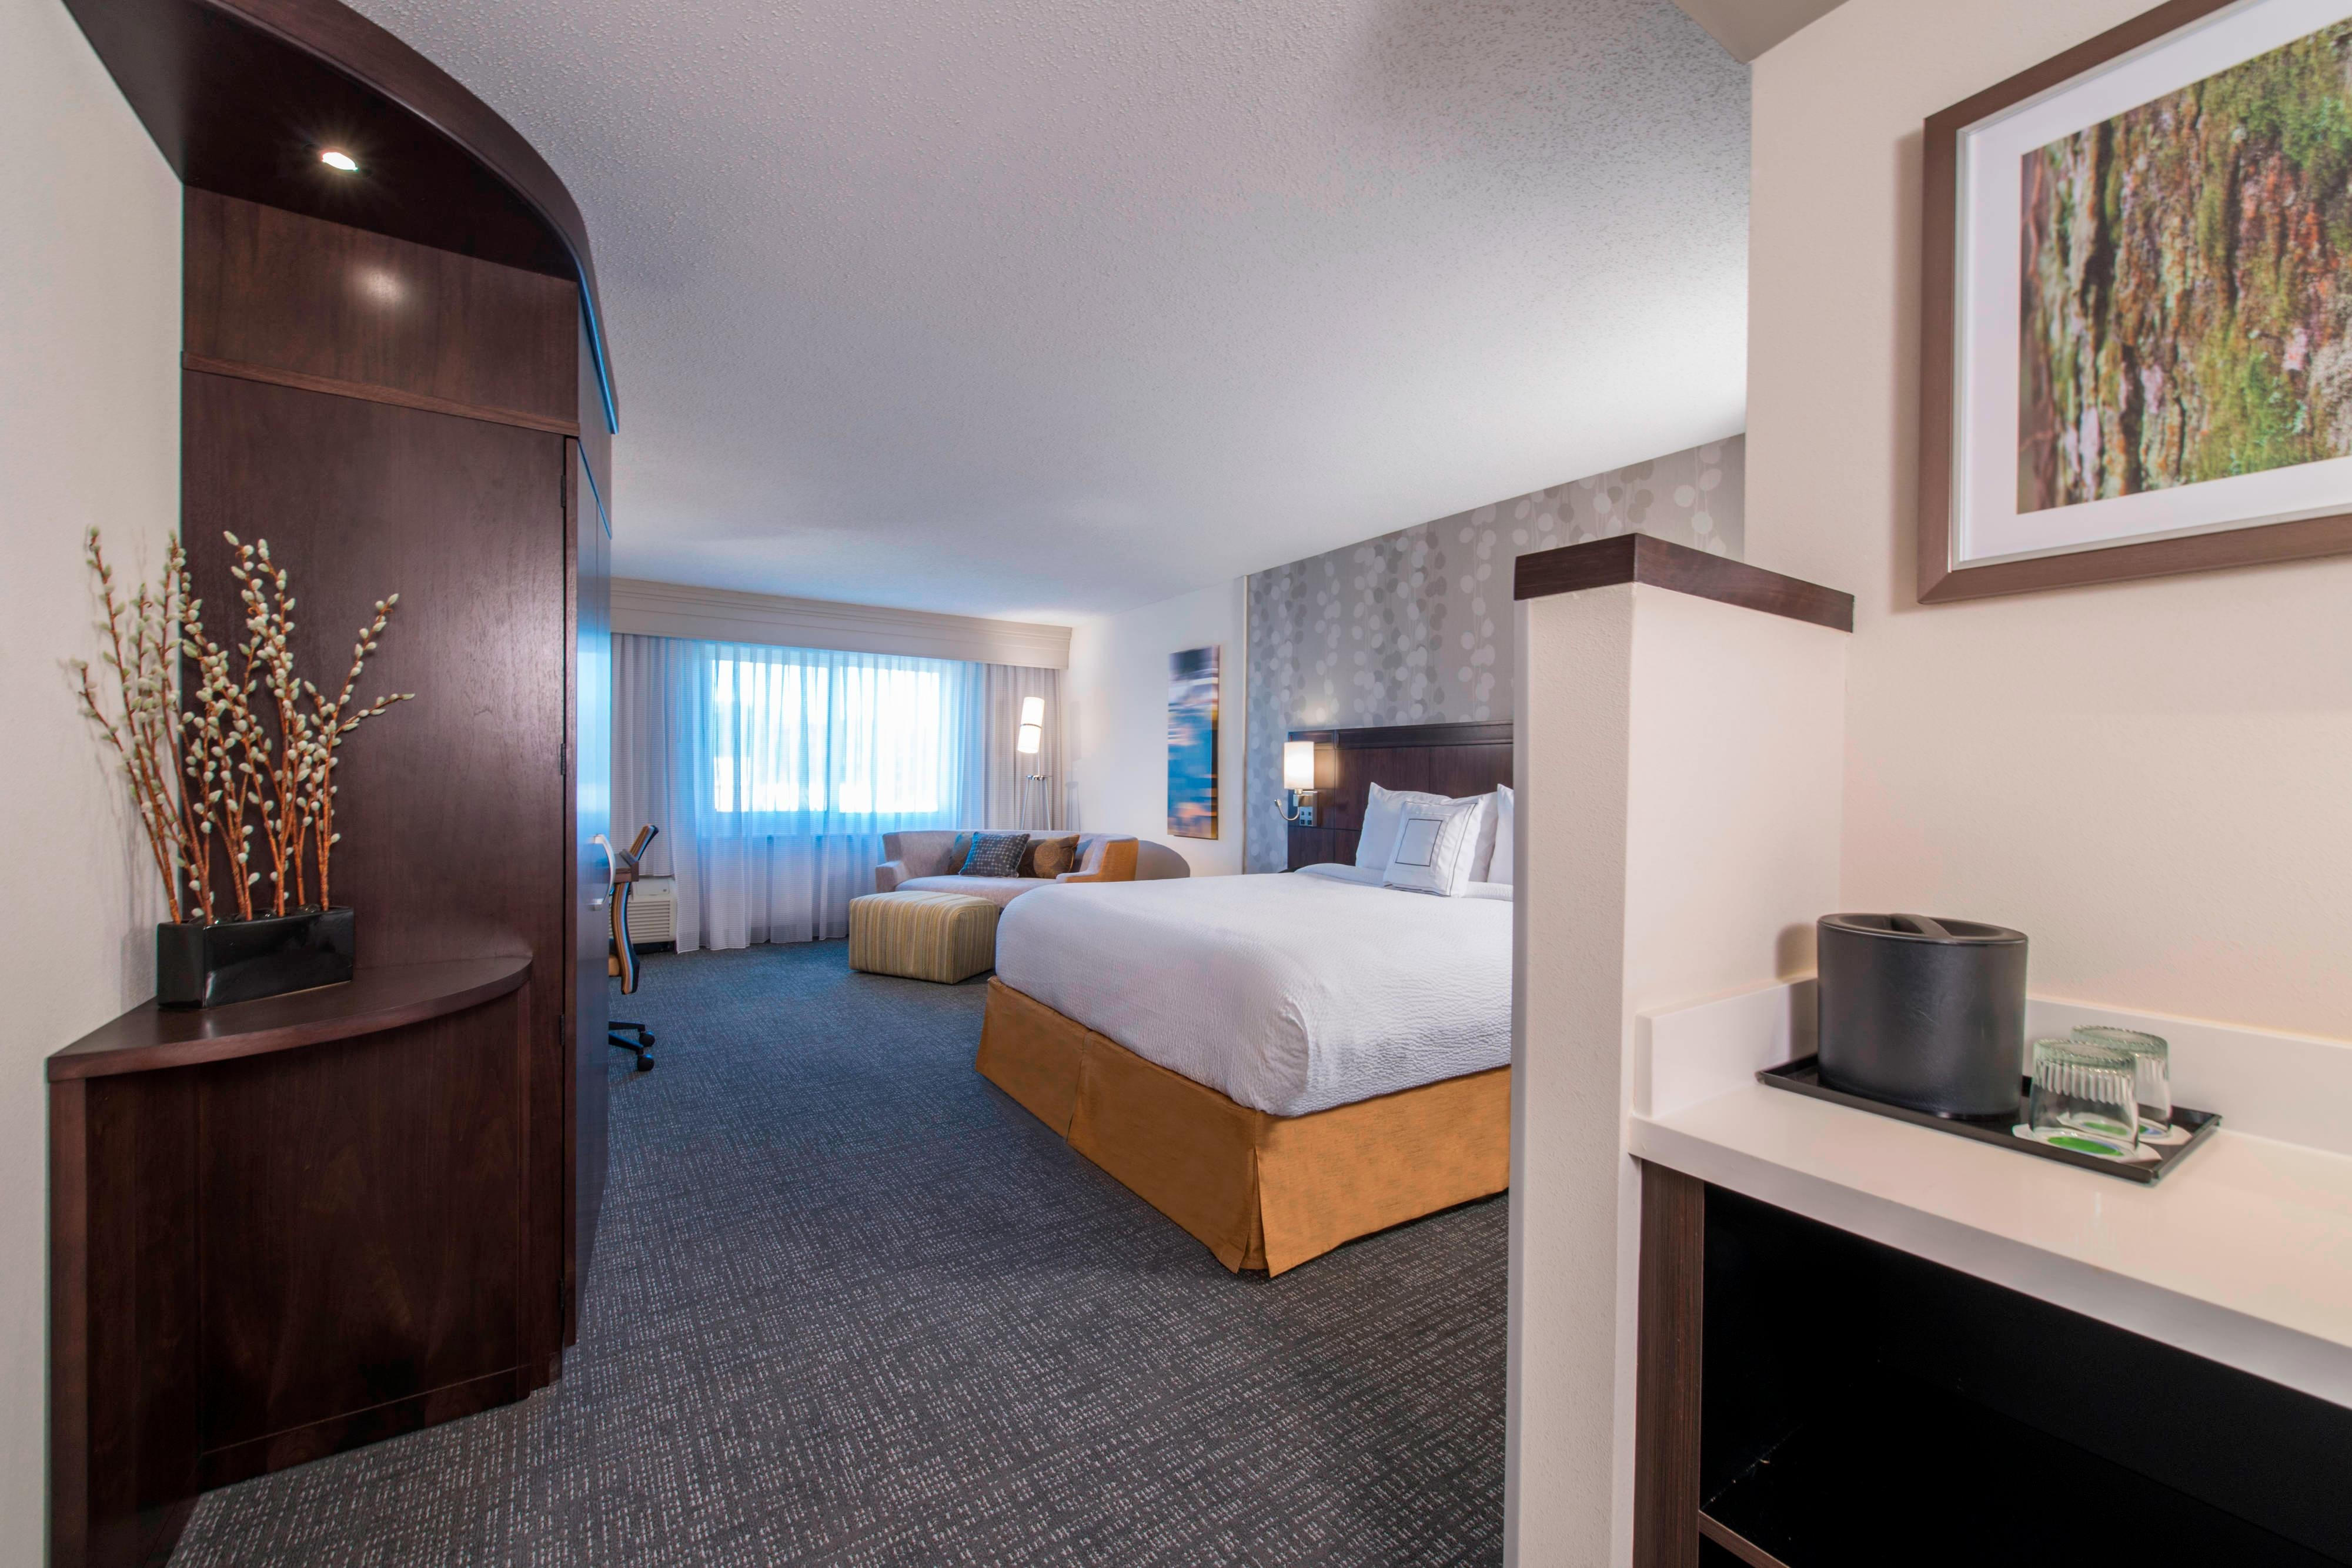 Hotels near Yokohama in Columbus